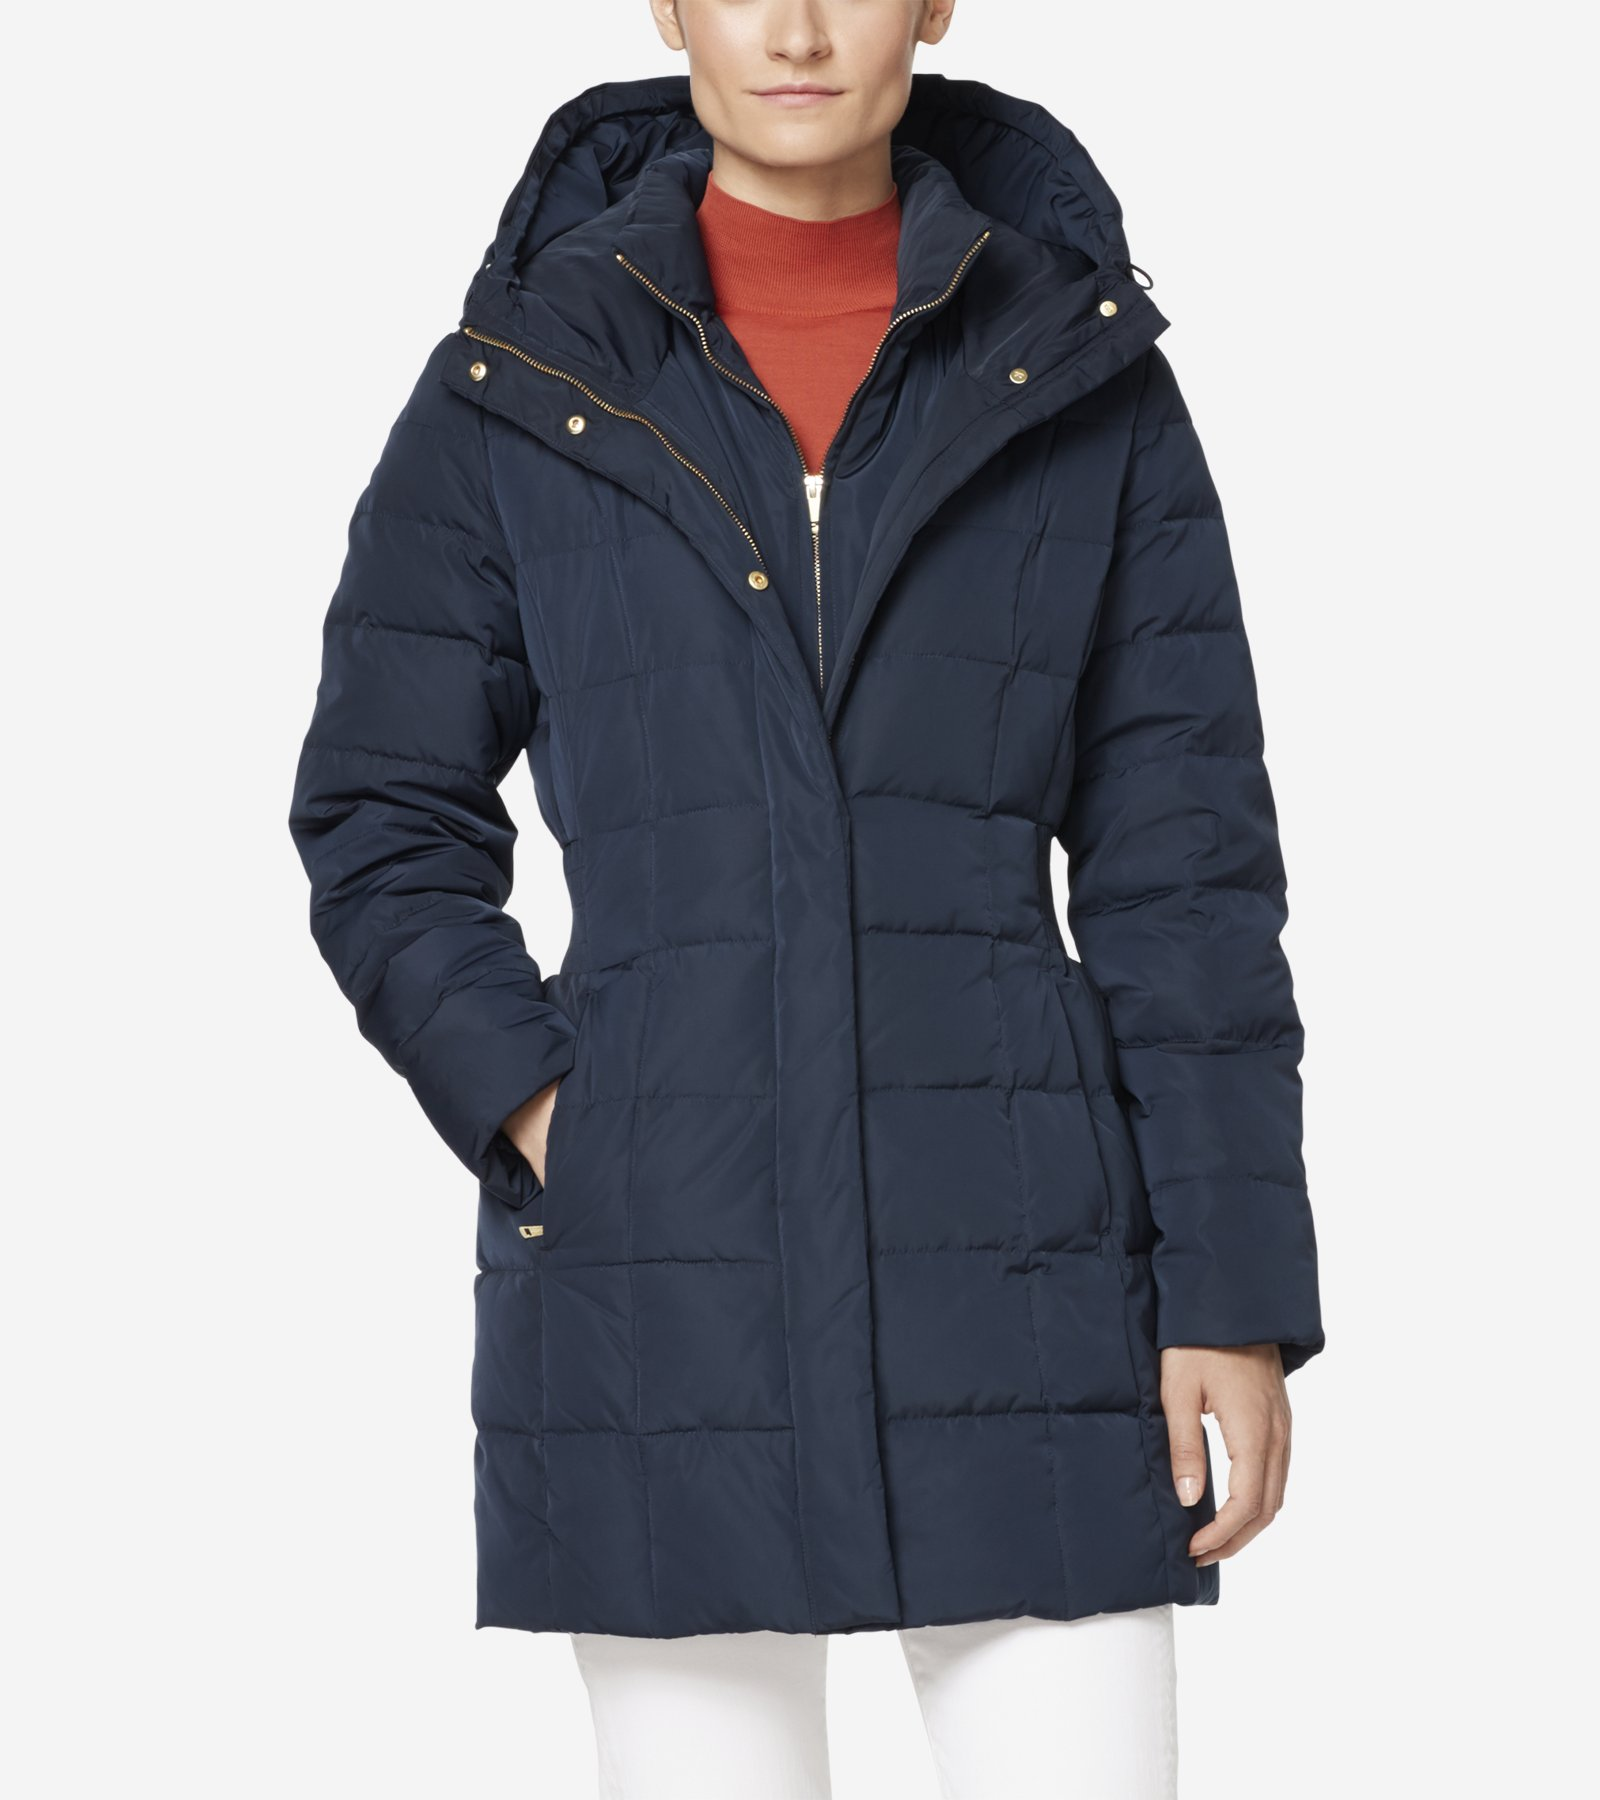 db6923a40 Signature Down Coat